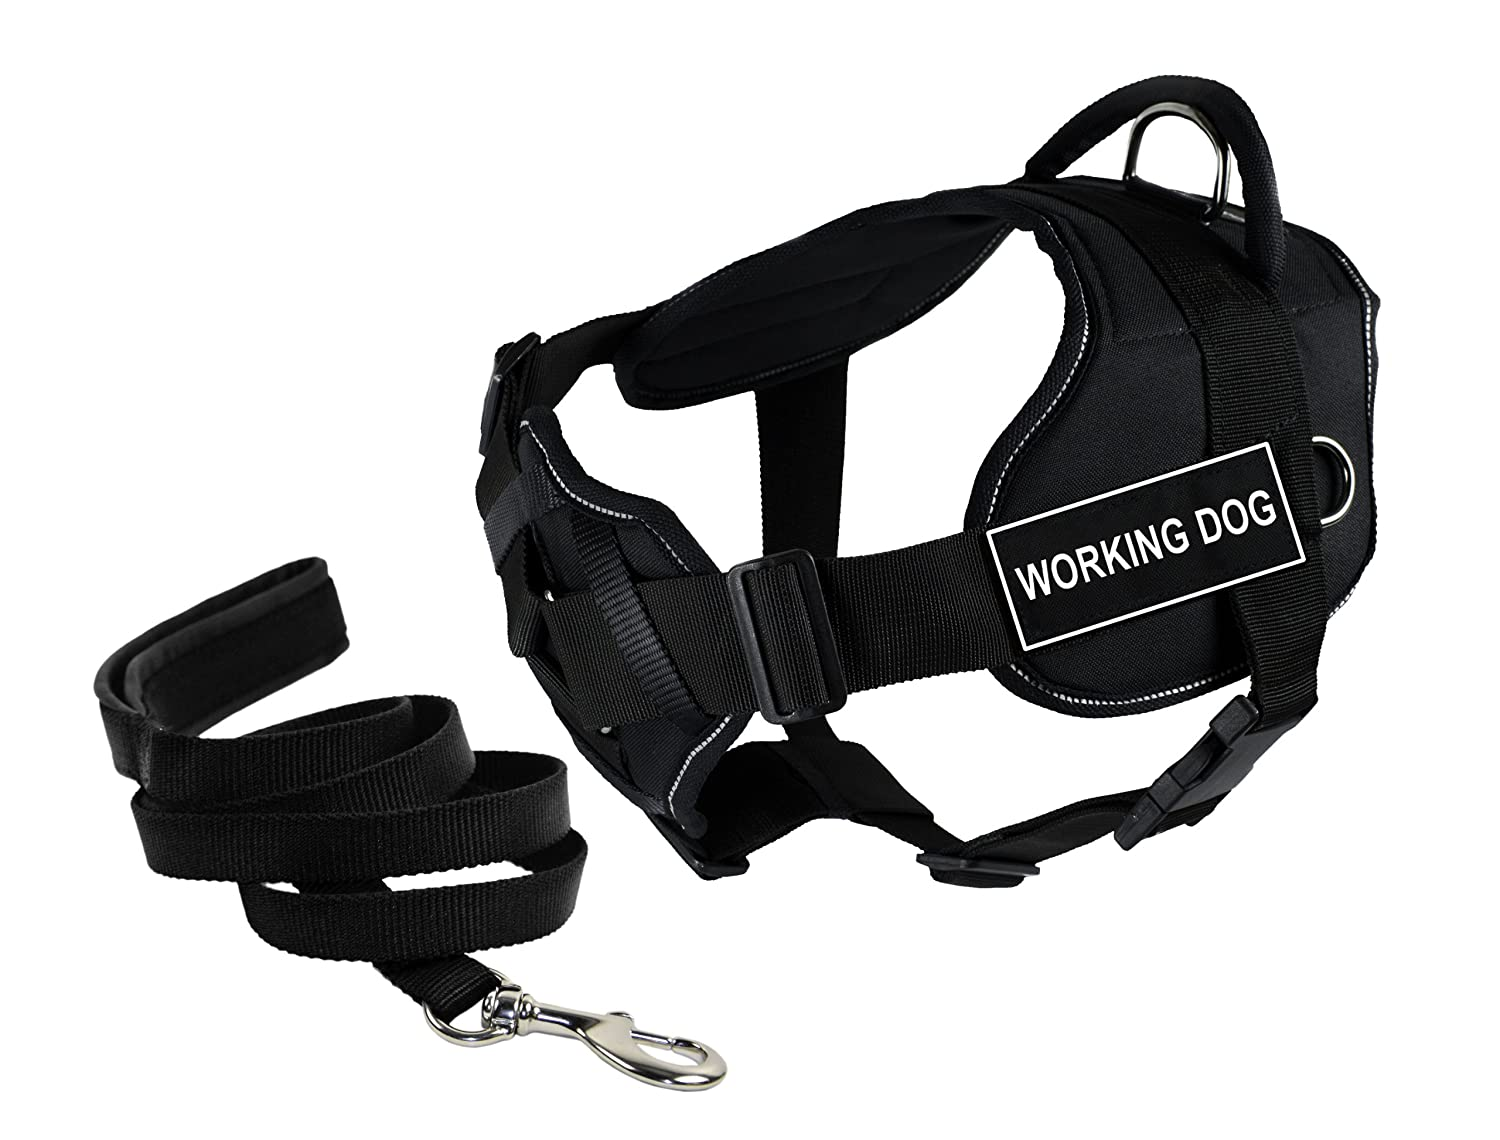 Dean & Tyler Bundle of 22 to 27-Inch DT Fun Harness with Chest Support and 6-Feet Stainless Snap Padded Puppy Leash, Working Dog, Black with Reflective Trim